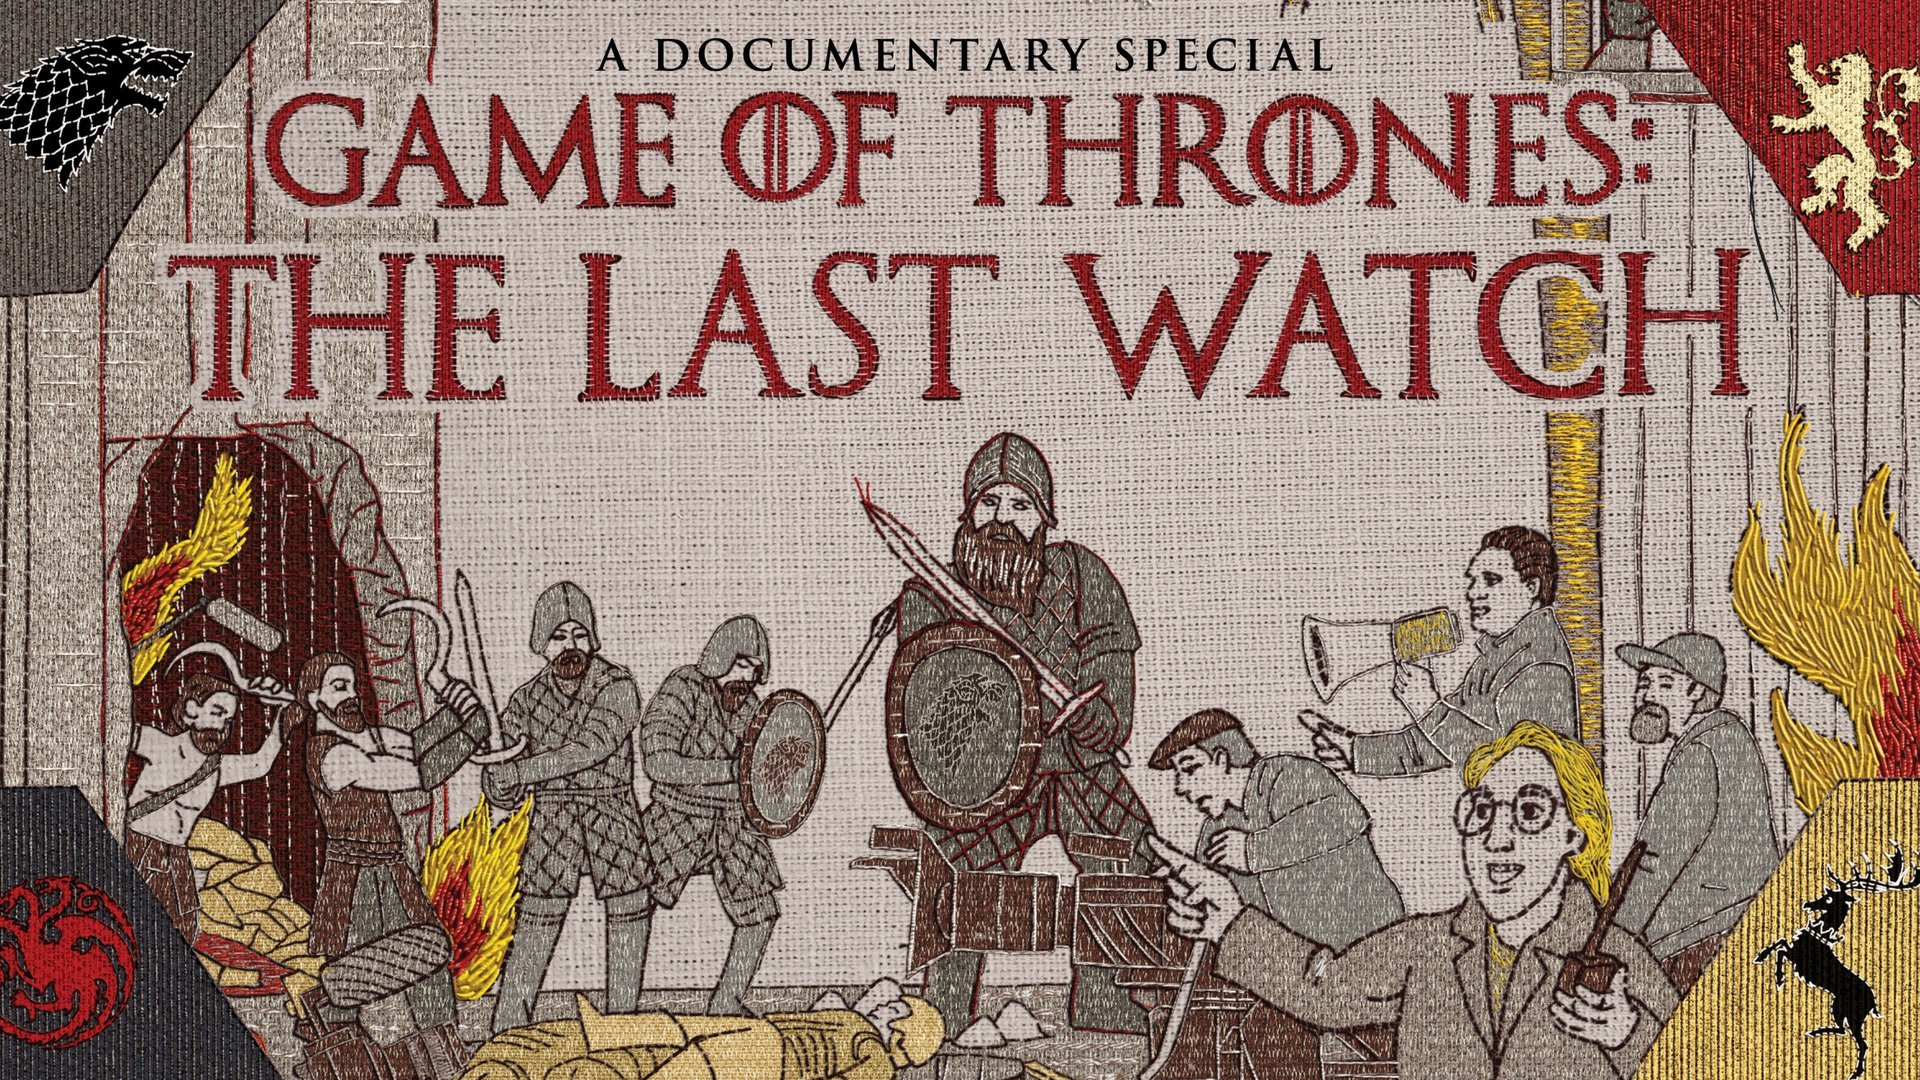 Game of Thrones: The Last Watch - HBO